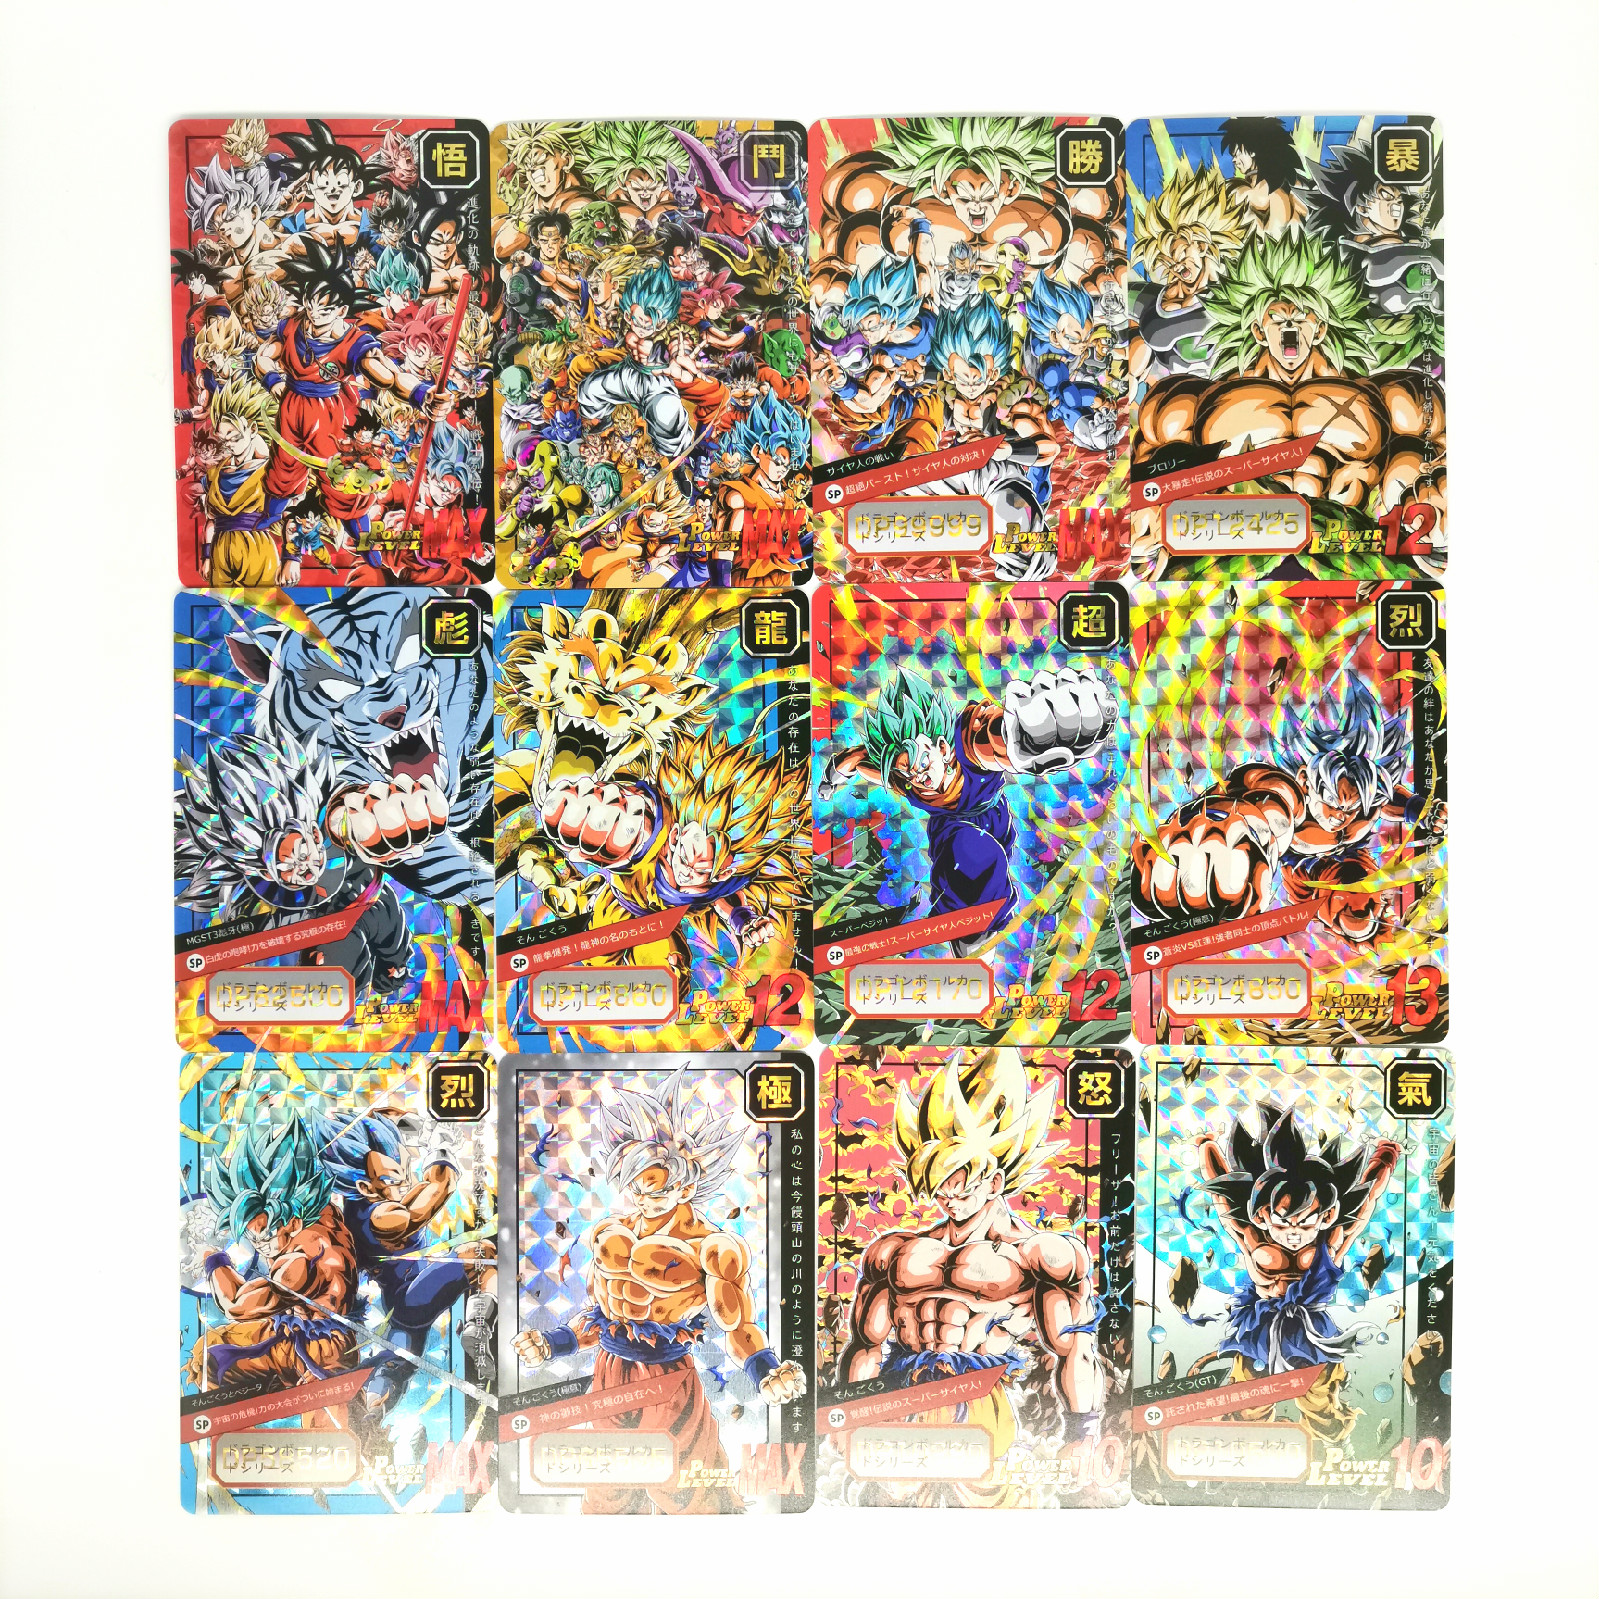 New 29pcs/set Super Dragon Ball Z Heroes Battle Card Ultra Instinct Goku Vegeta Game Collection Cards image